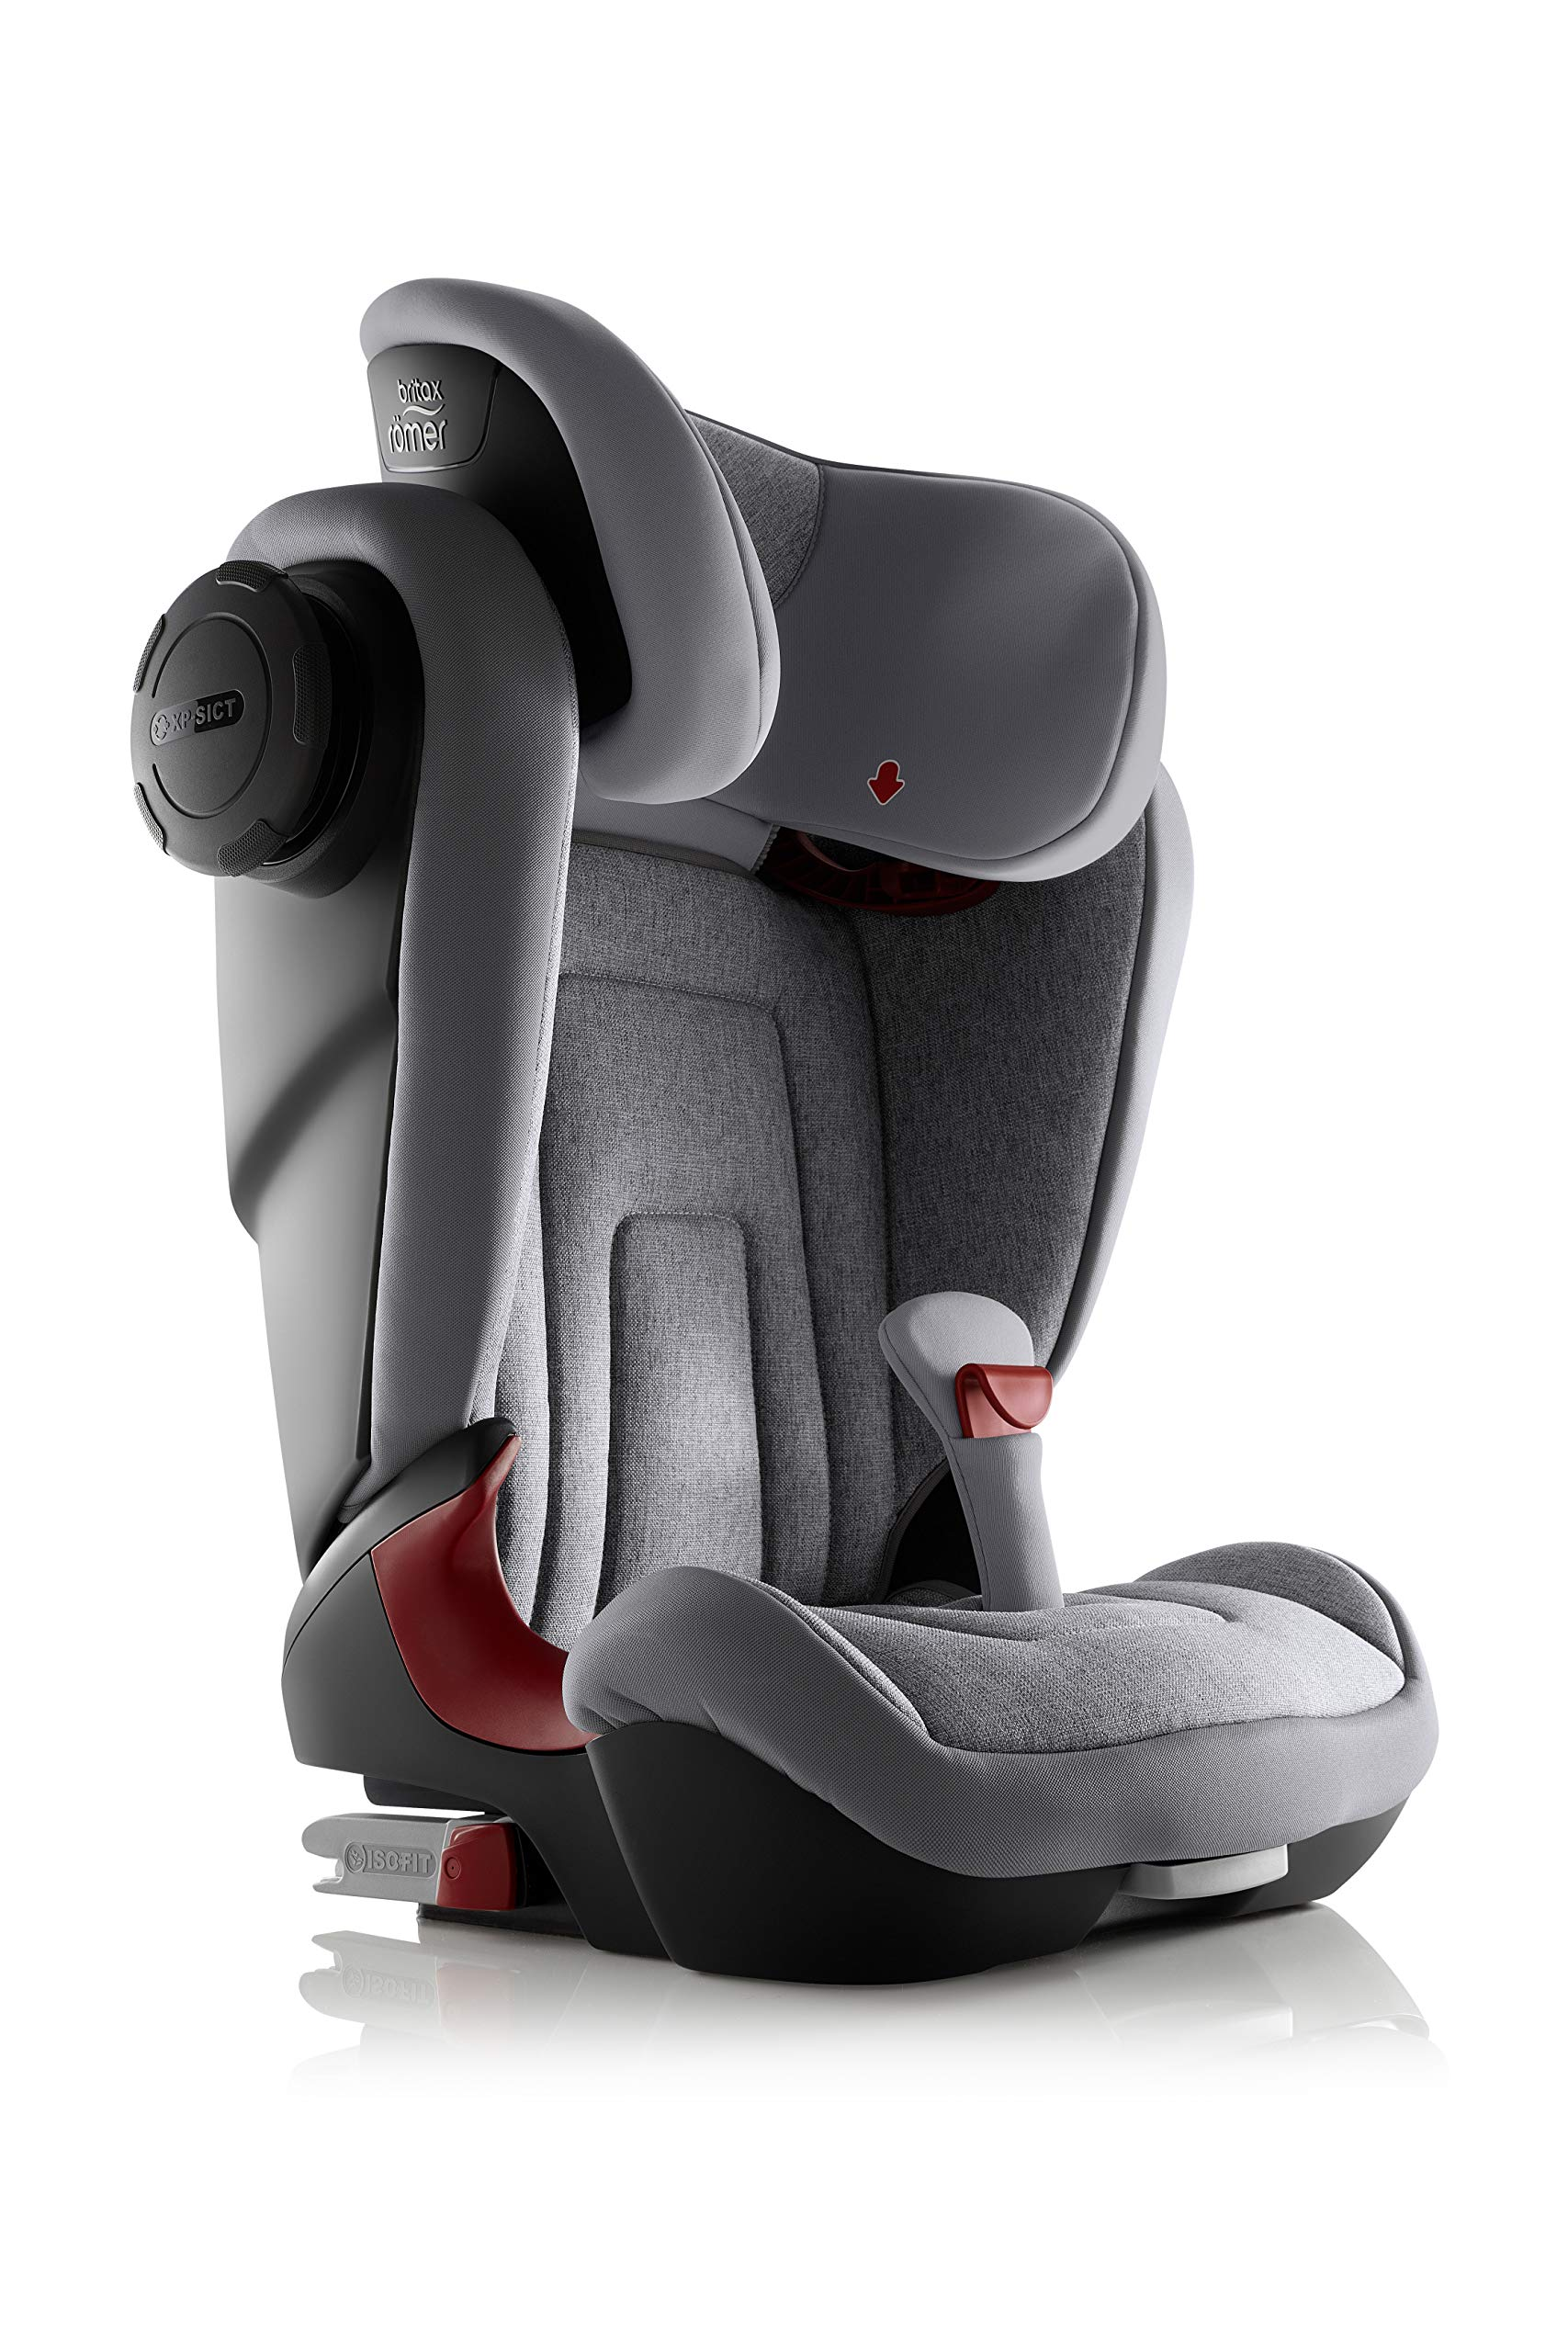 Britax Römer KIDFIX² S Group 2-3 (15-36kg) Car Seat - Grey Marble  Advanced side impact protection - sict offers superior protection to your child in the event of a side collision. reducing impact forces by minimising the distance between the car and the car seat. Secure guard - helps to protect your child's delicate abdominal area by adding an extra - a 4th - contact point to the 3-point seat belt. High back booster - protects your child in 3 ways: provides head to hip protection; belt guides provide correct positioning of the seat belt and the padded headrest provides safety and comfort. 4